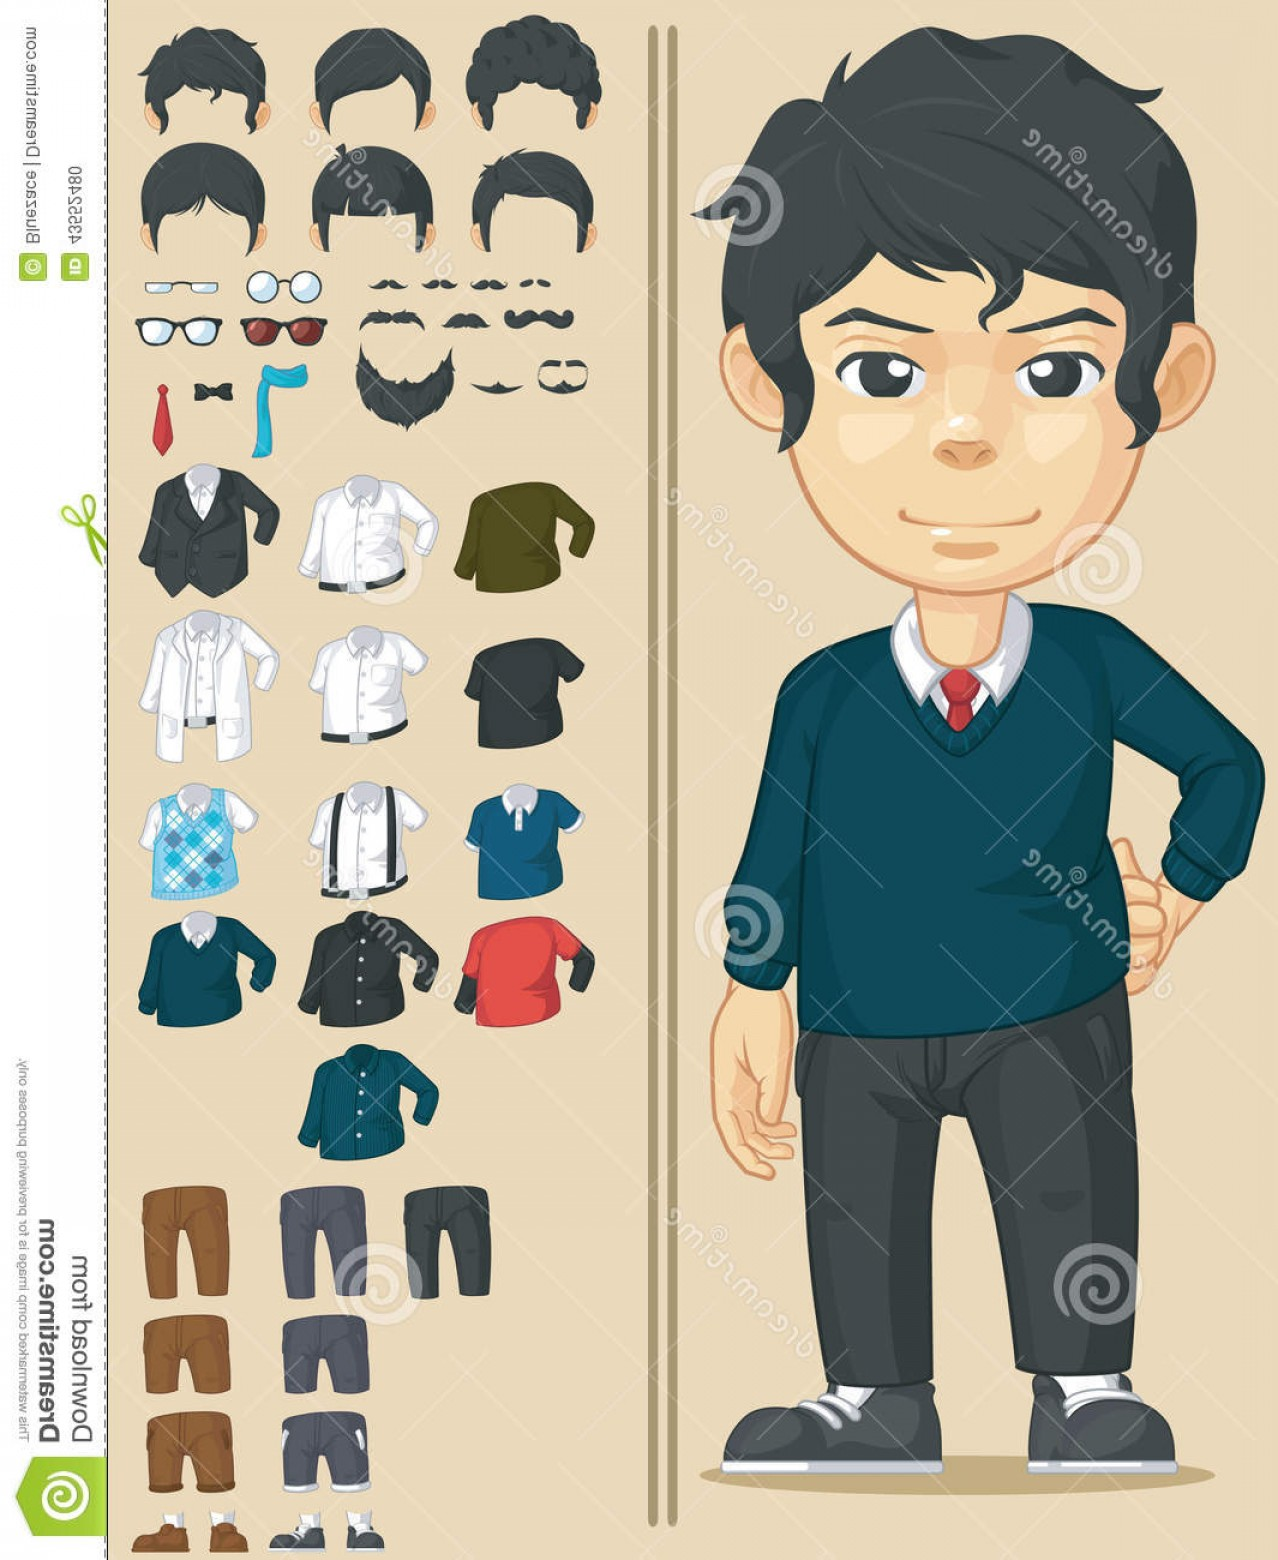 Handsome Man Vector Outline: Stock Illustration Handsome Man Customizable Character Vector Set Many Clothes Accessories Can Be Customized Drawn Cartoon Image